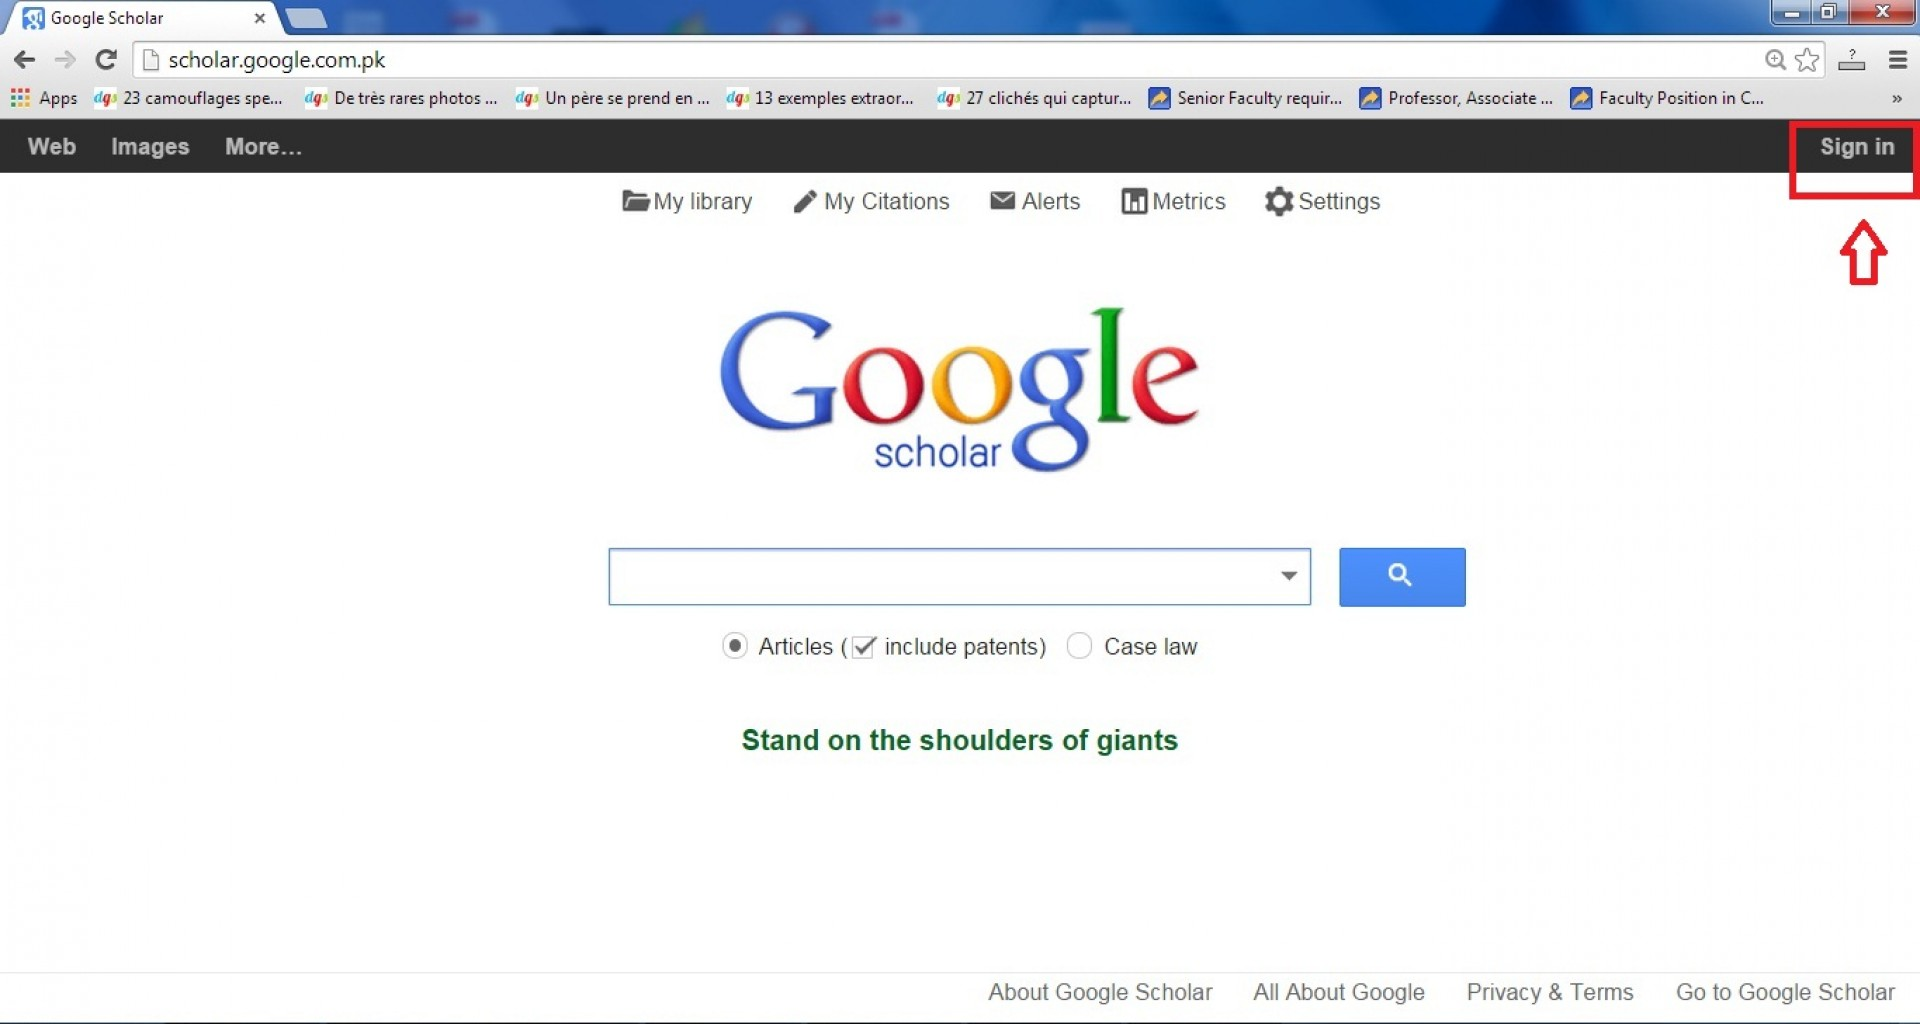 002 Google Scholar Manually Adding Publication Research Article Paper How To Upload Unbelievable On 1920